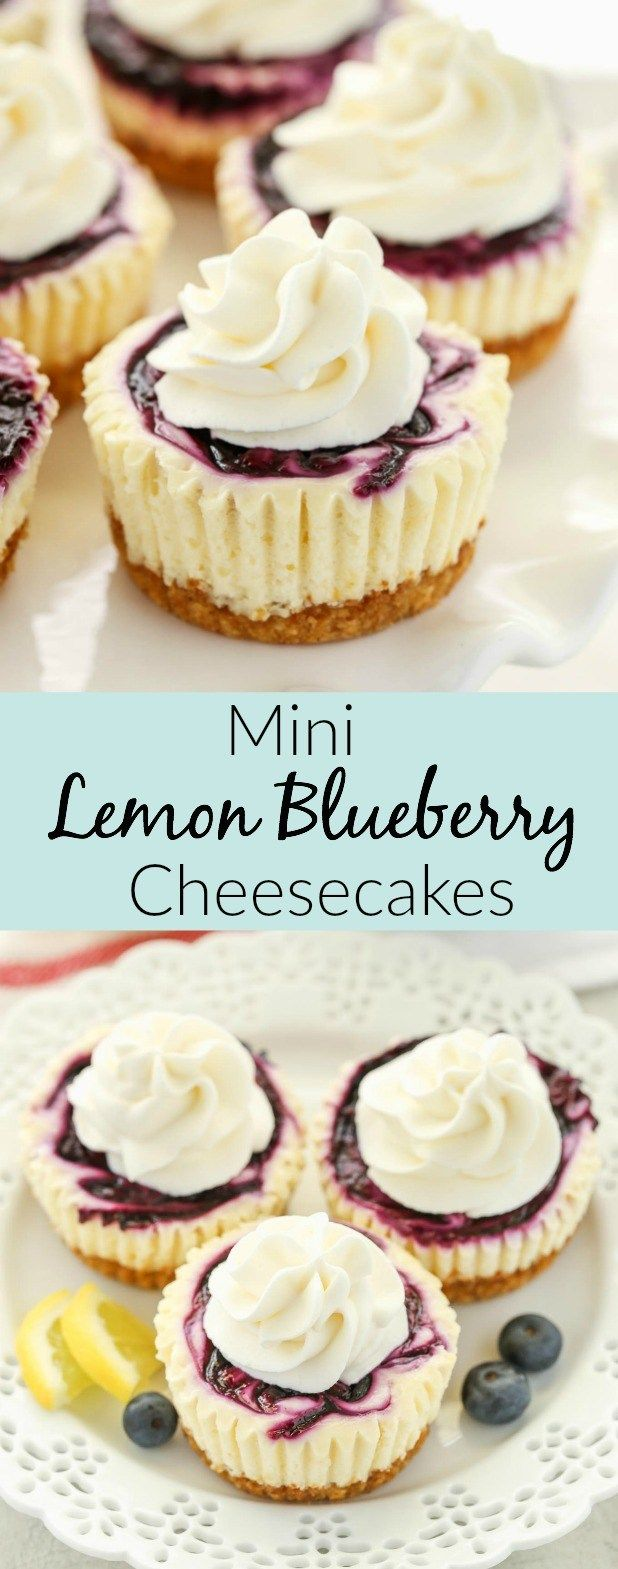 These Mini Lemon Blueberry Cheesecakes feature an easy homemade graham cracker crust, smooth and creamy lemon cheesecake filling, and a simple blueberry swirl! #cheesecake